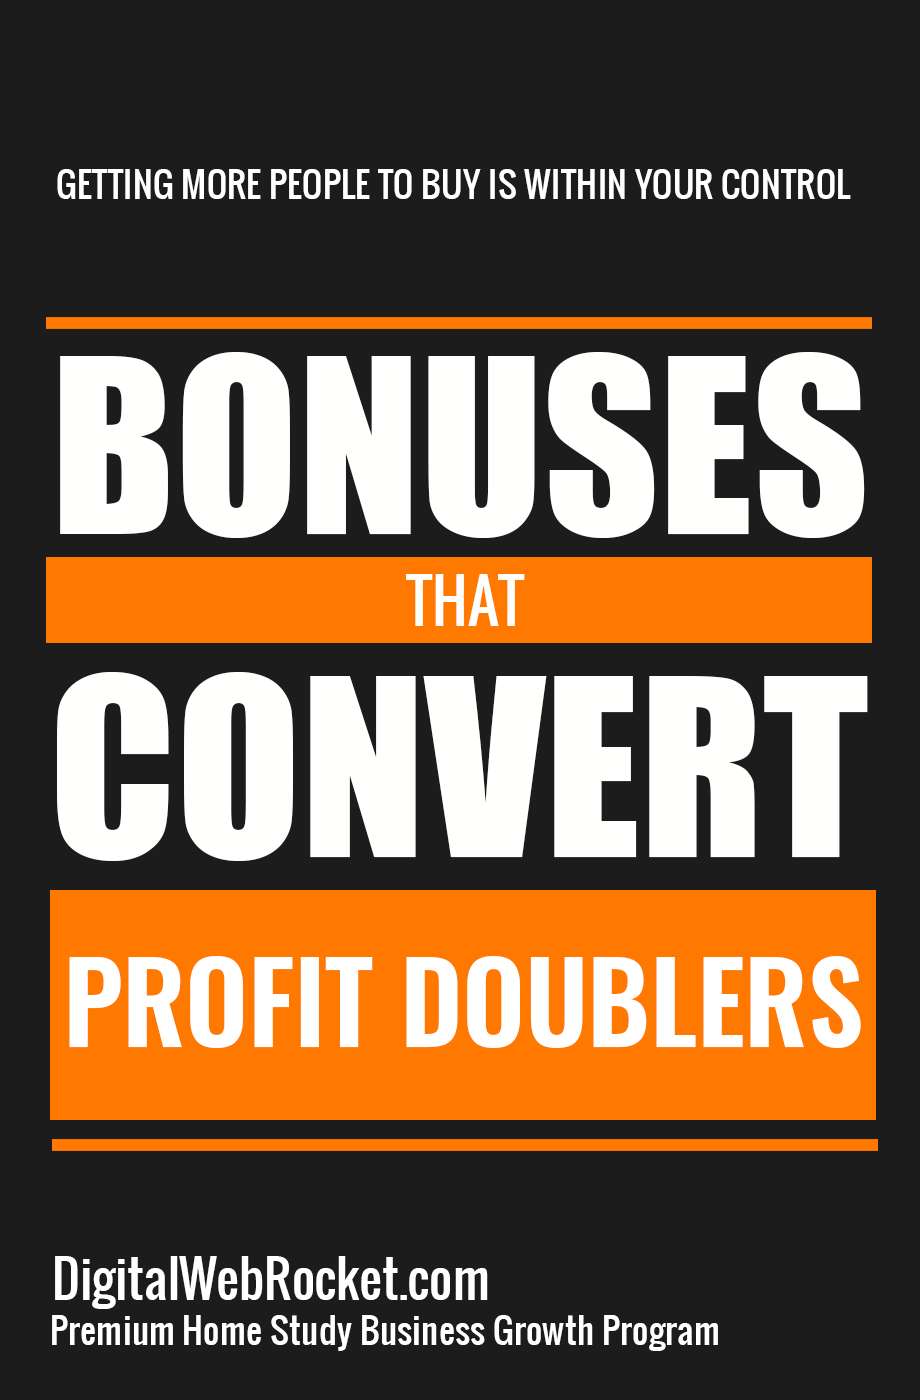 Profit Doublers: 4 Ways To Boost Profits After Delivering Bonuses.